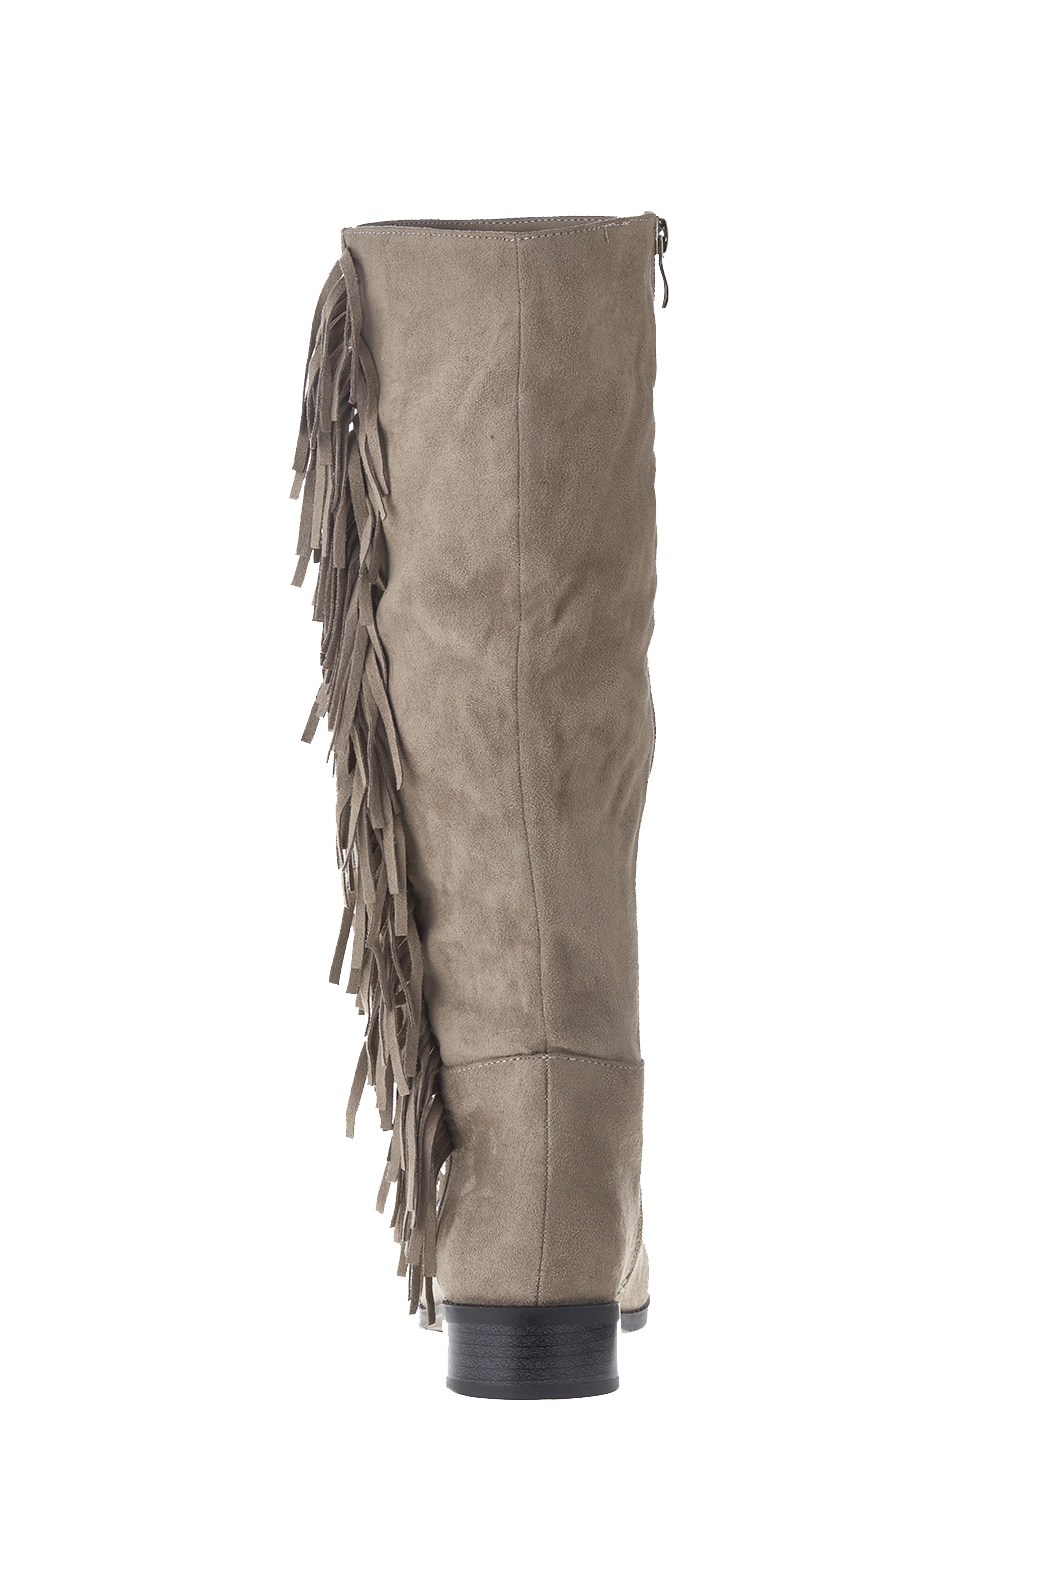 Qupid Suede Fringe Boots - Front Full Image